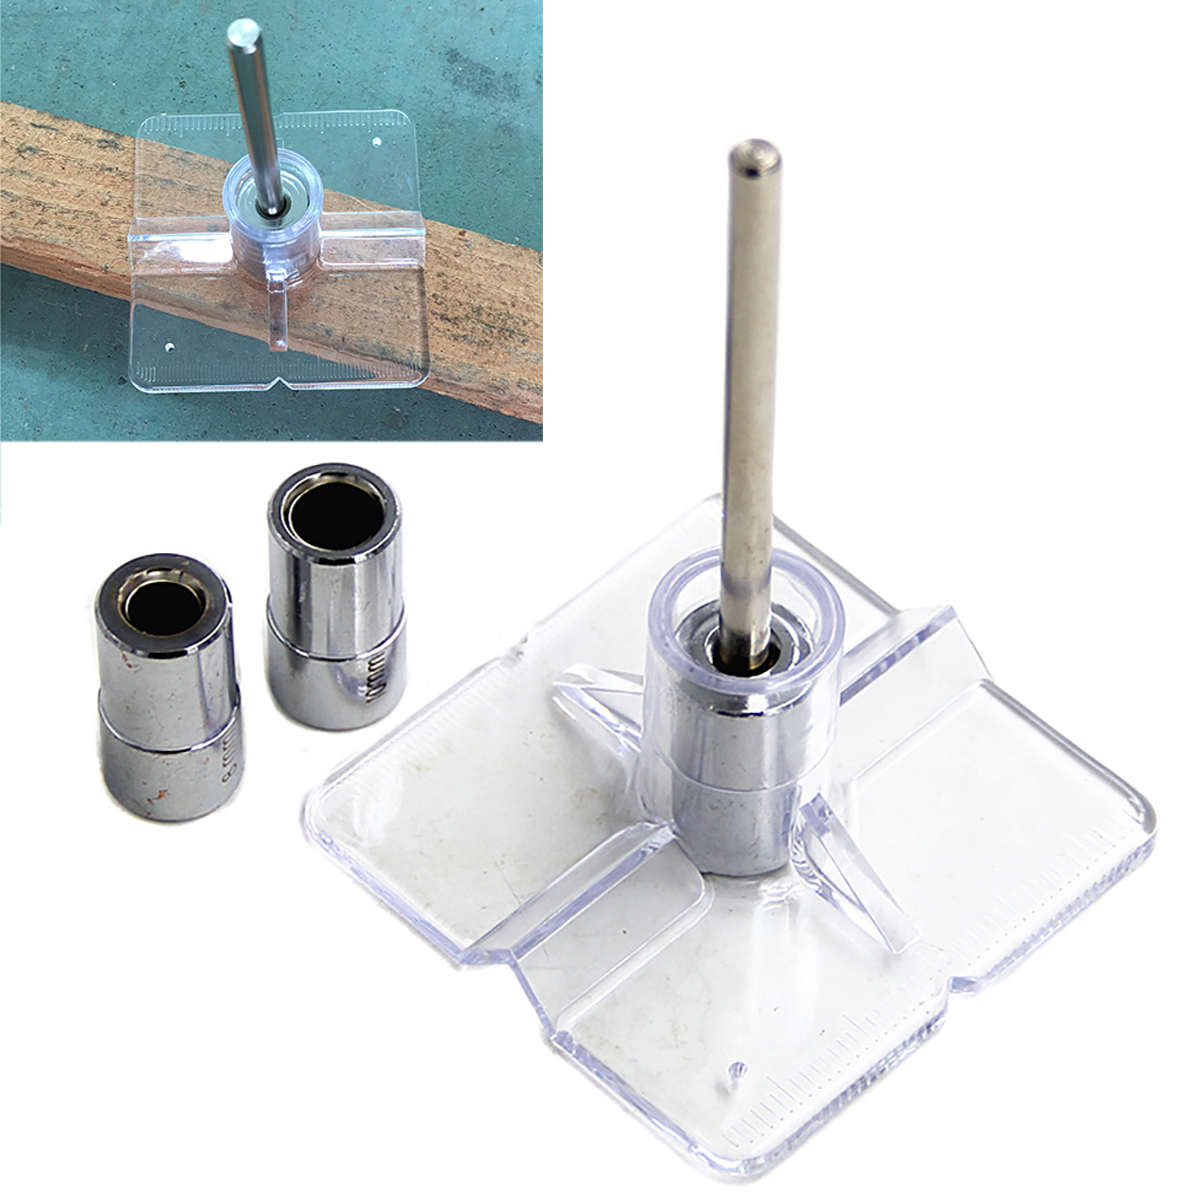 1Set Mini Pocket Hole Drill Dowel Jig Guide 6/8/10mm Woodworking Drilling Locator with Plastic Plate 1 4 hex twist 9 5mm diameter bits step drill woodworking drills bits set for kreg pocket hole drill jig guide